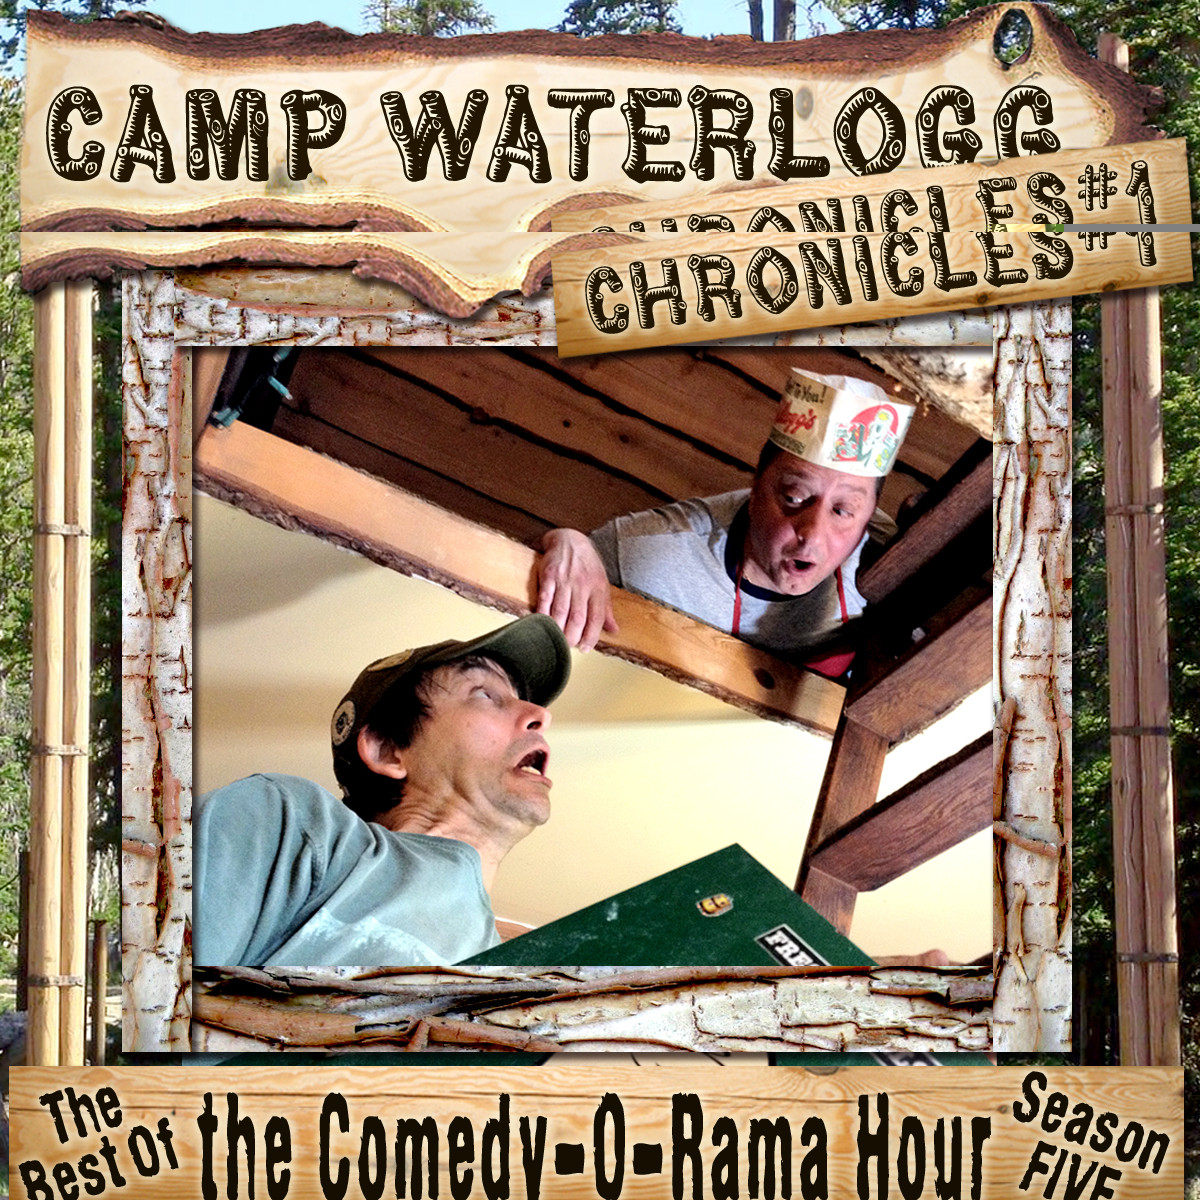 Printable The Camp Waterlogg Chronicles 1: The Best of the Comedy-O-Rama Hour, Season 5 Audiobook Cover Art